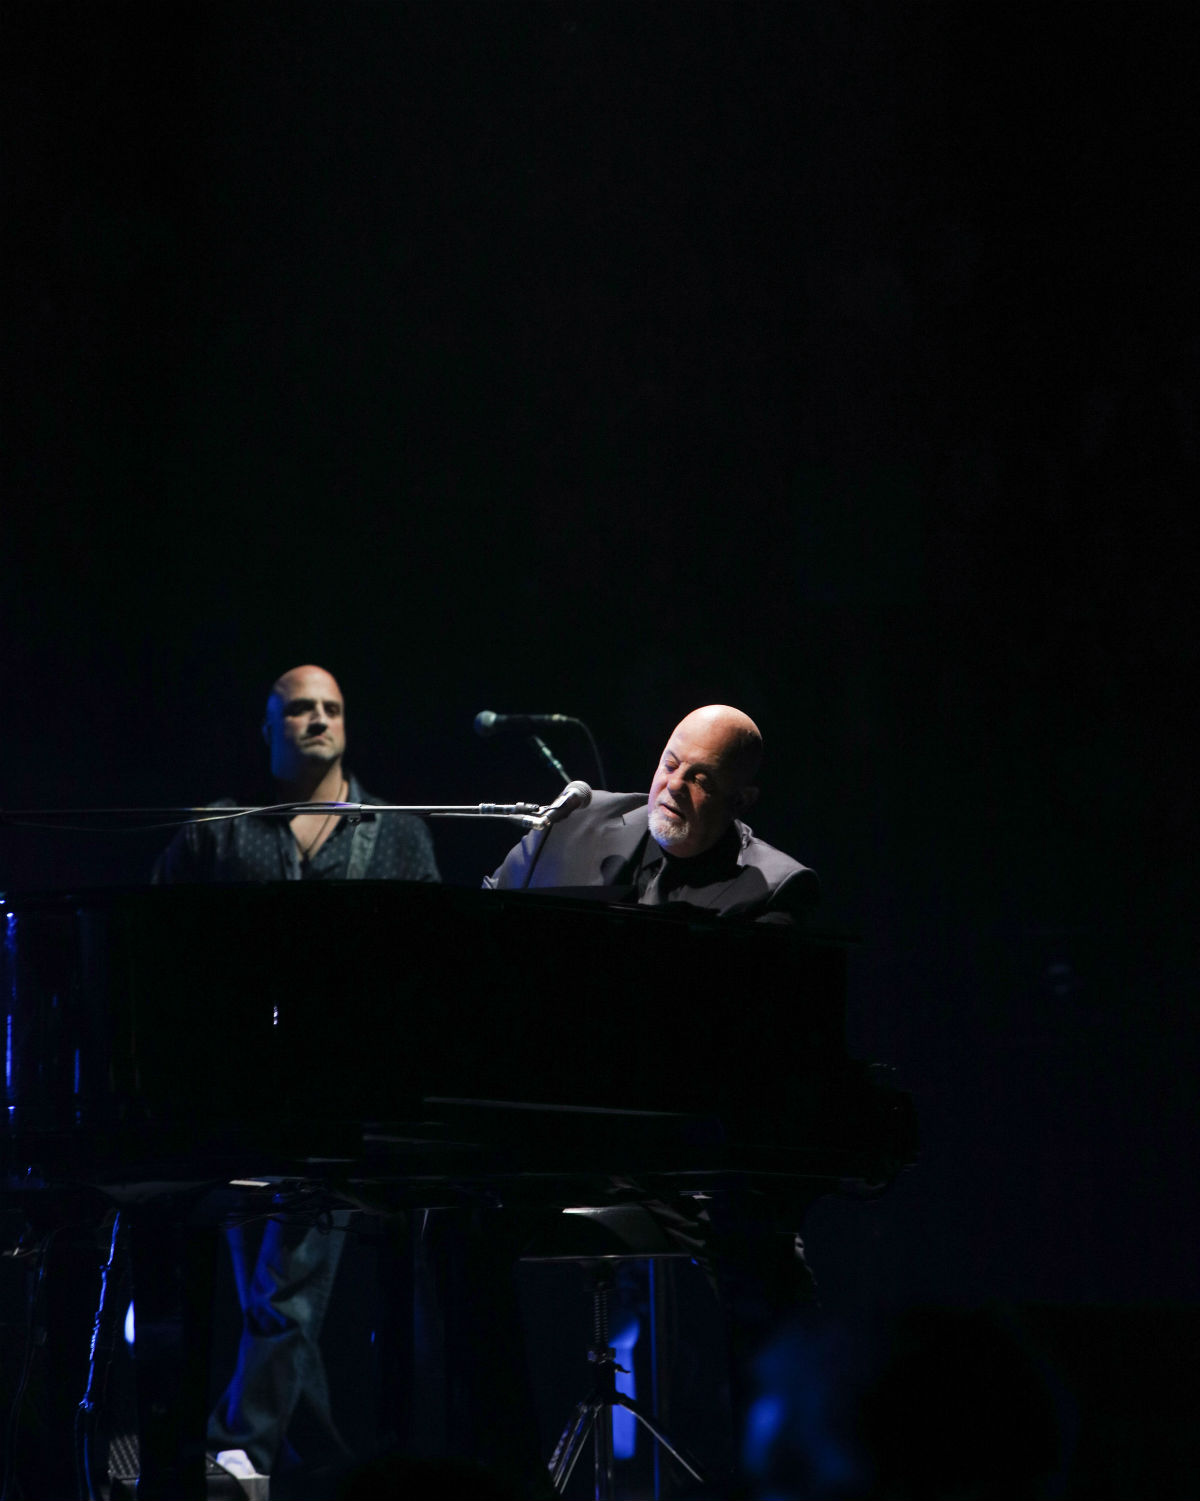 Billy Joel At Madison Square Garden New York Ny February 21 2018 Photo 4 Billy Joel